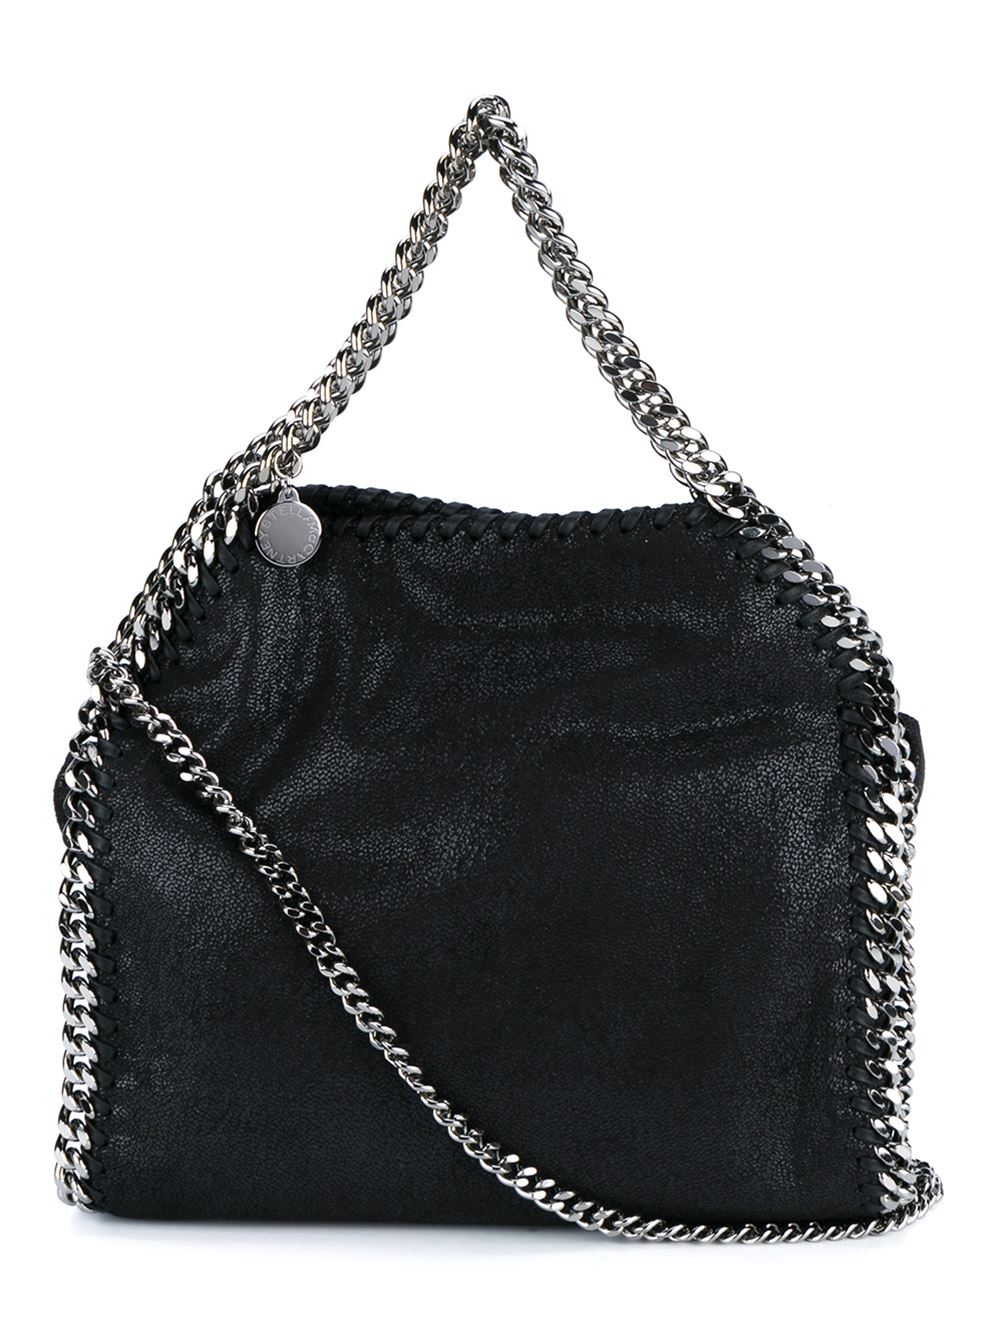 d83217b37 Bolsa Stella Mccartney Falabella Inspired | The Art of Mike Mignola